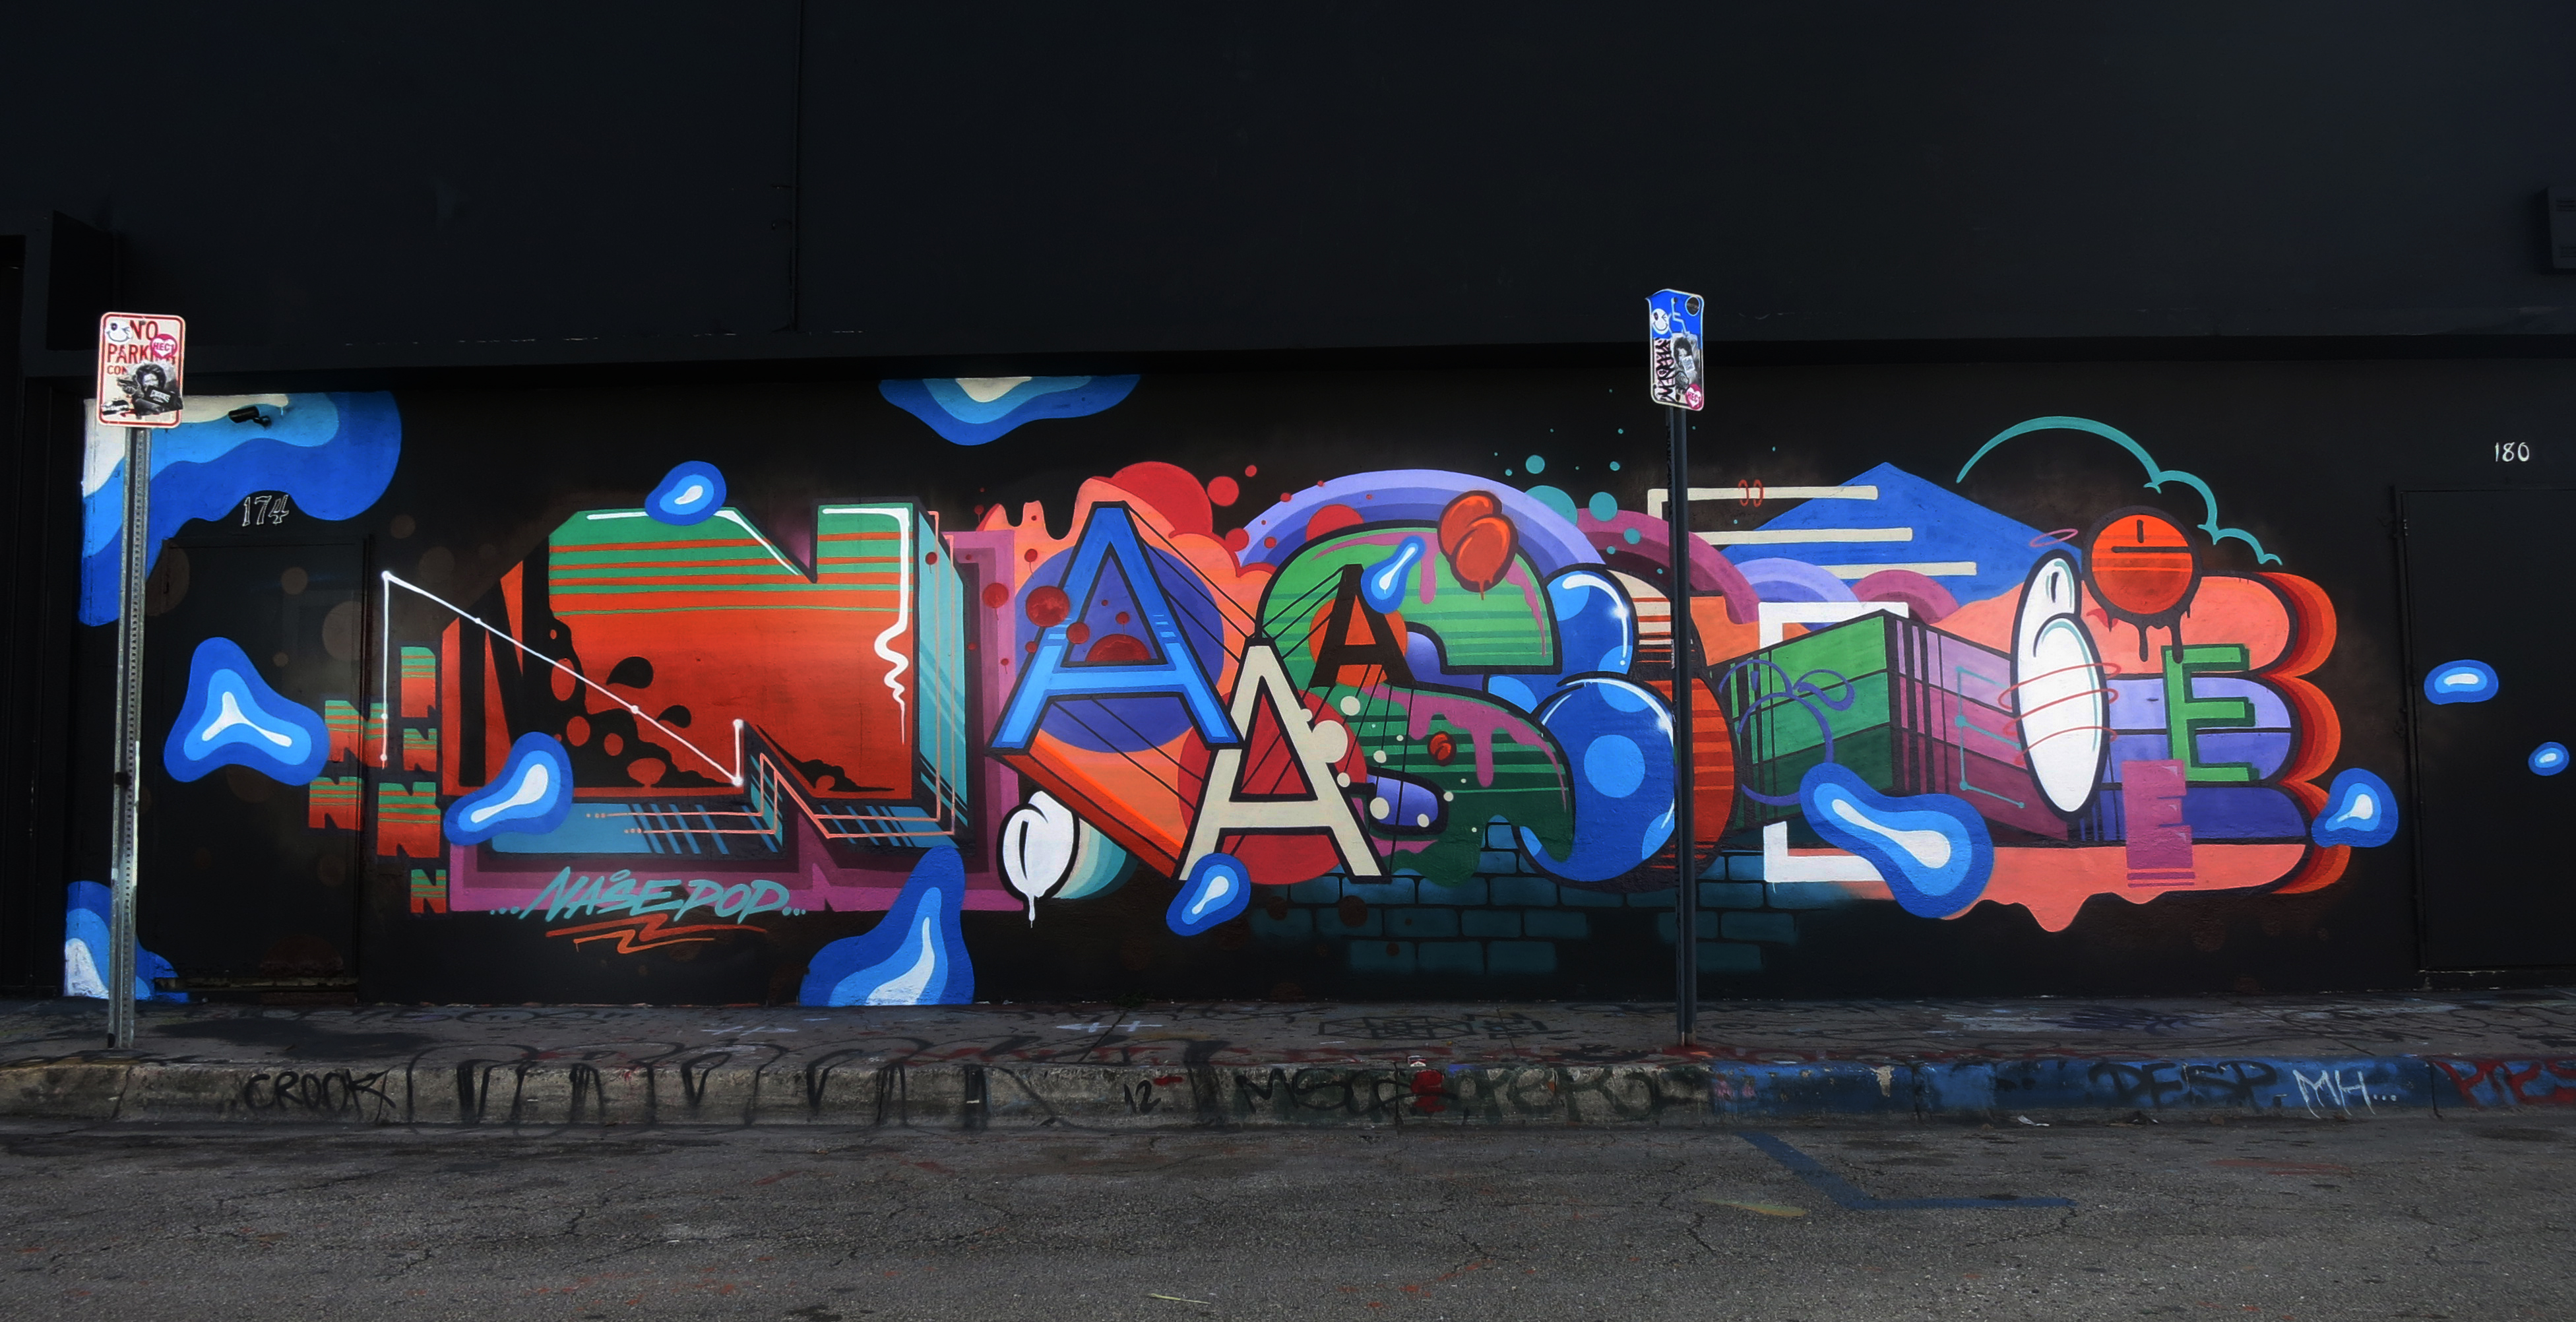 Nase Wynwood 2013